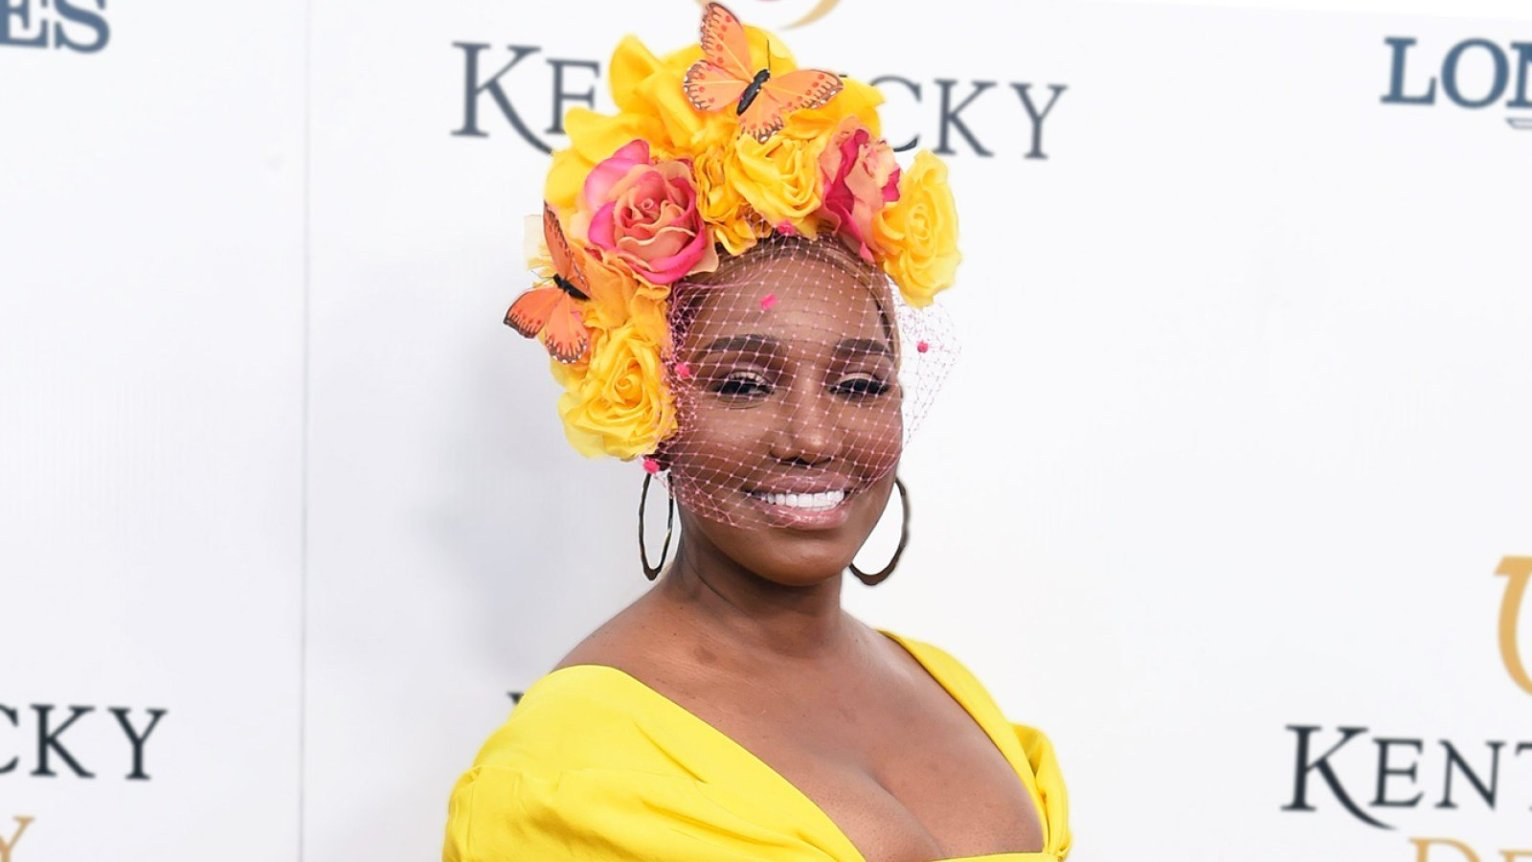 NeNe Leakes' Fans Are Freaking Out That She's Not Being Featured Enough On RHOA